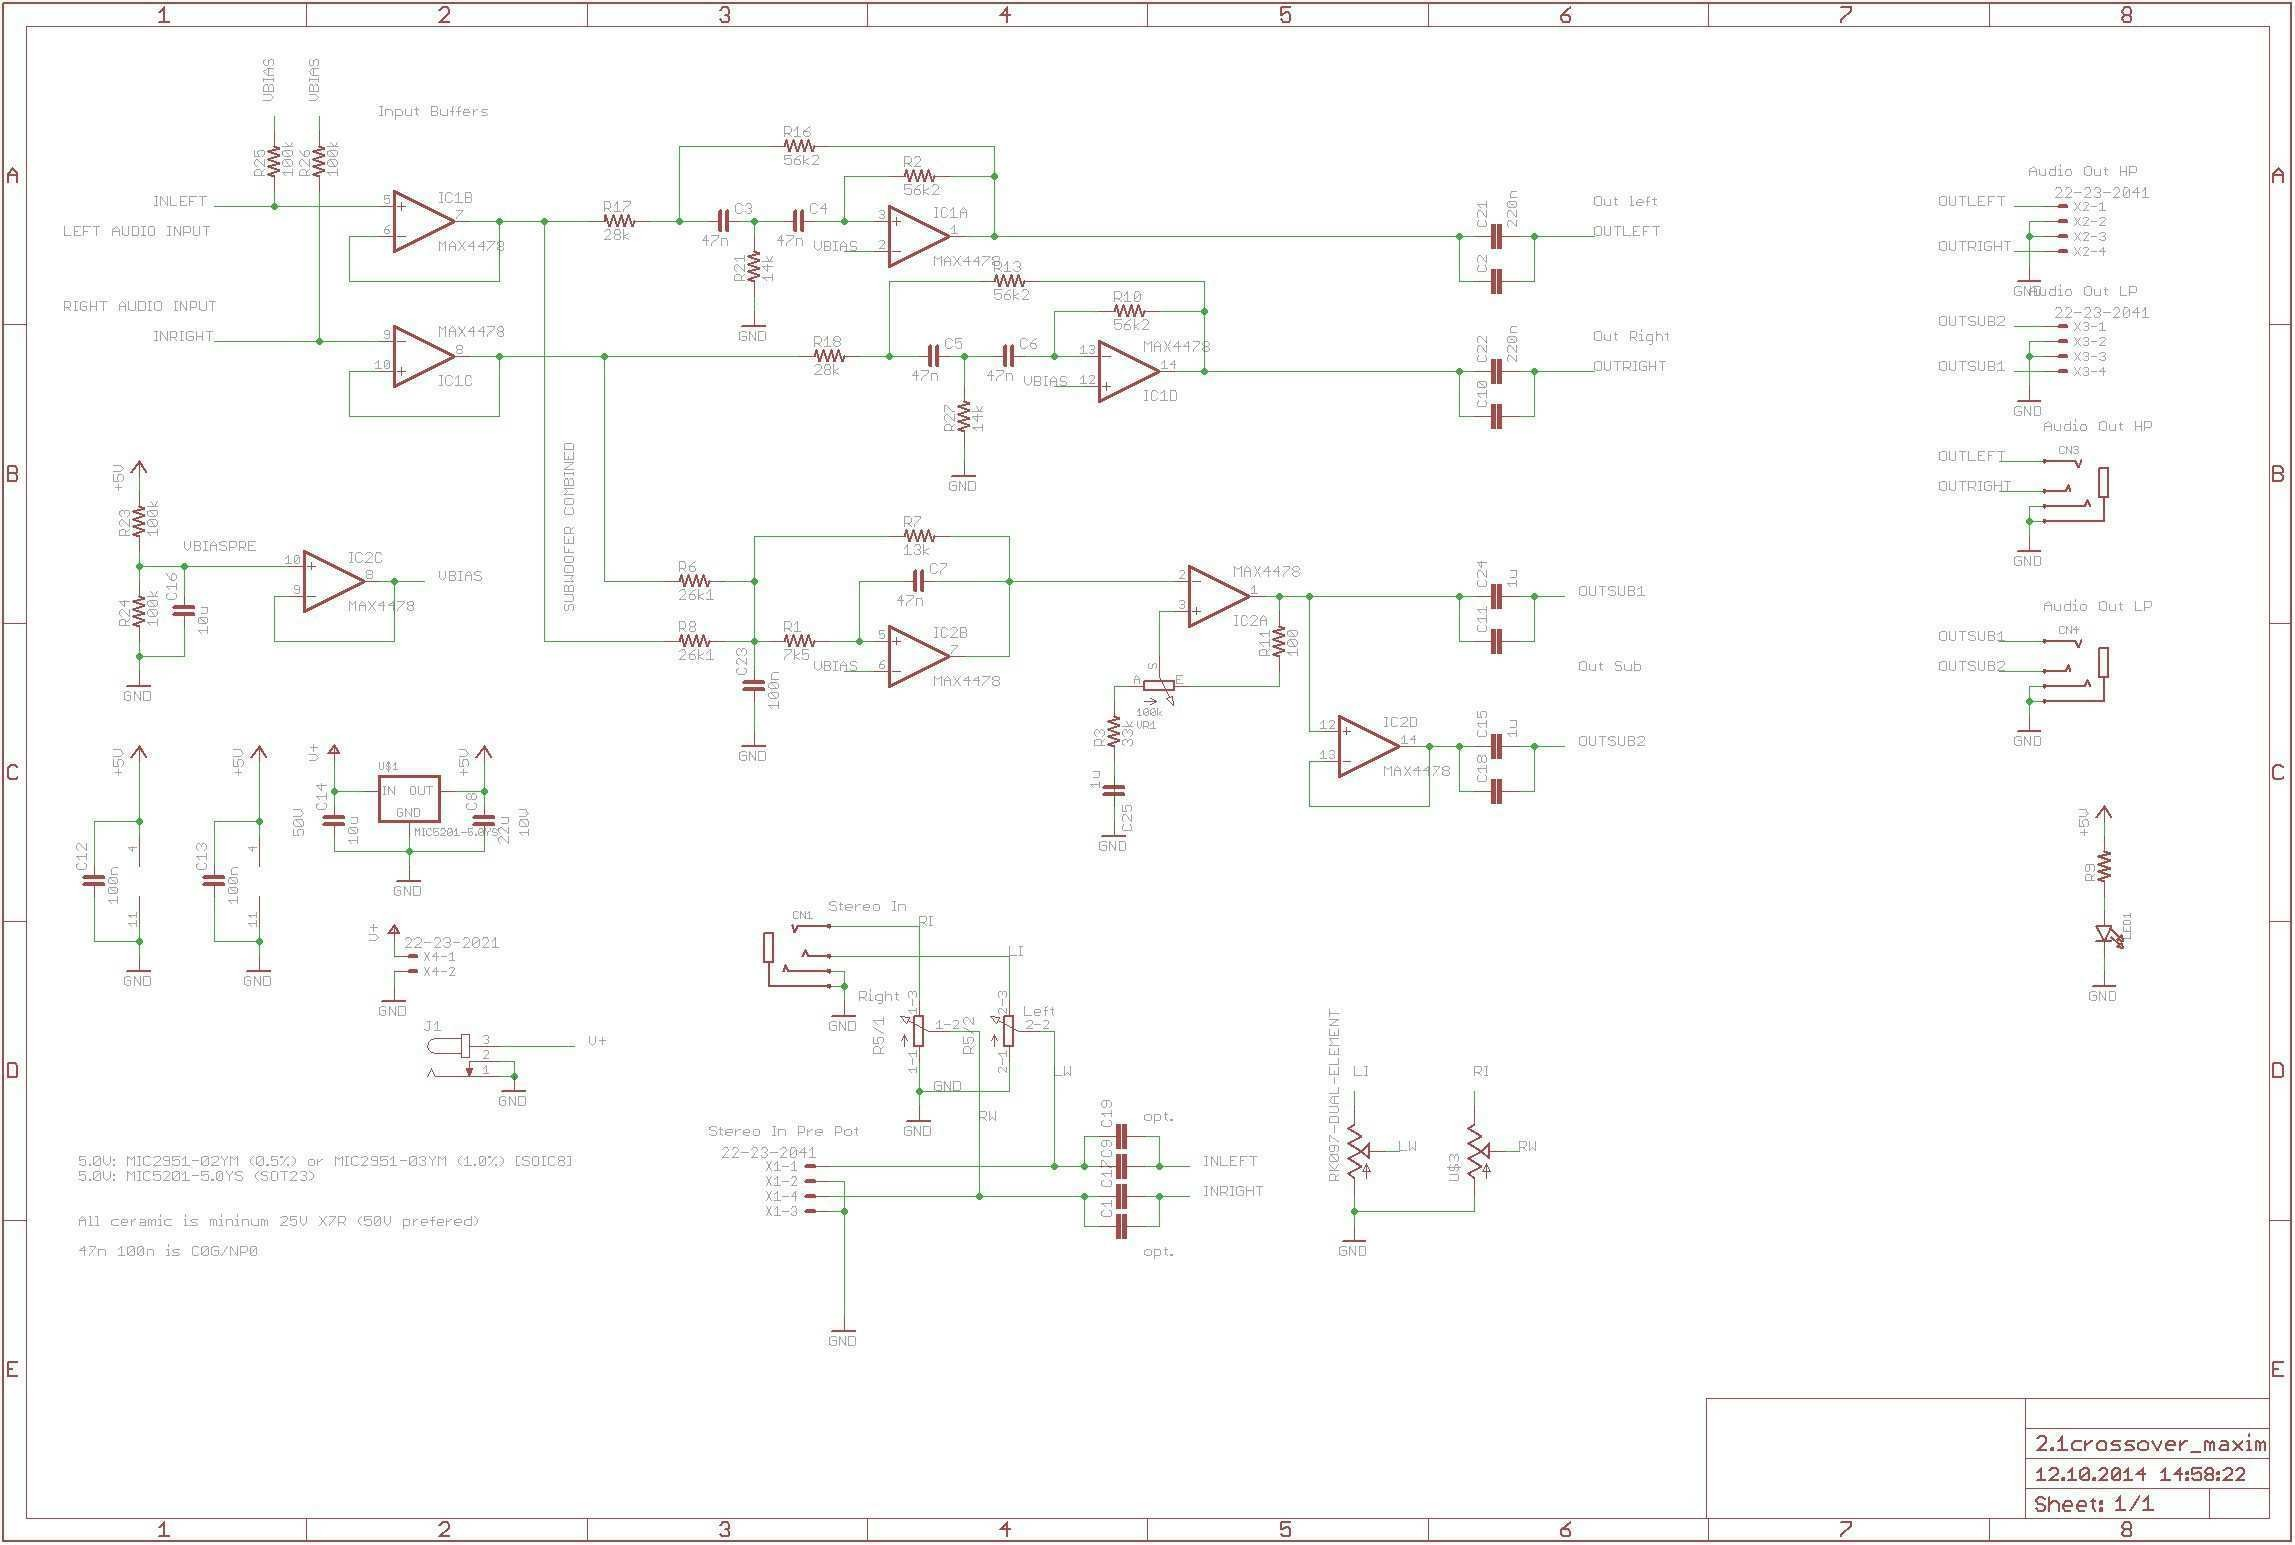 Subwoofer Wiring Diagram Aktive Crossoverfrequenzweiche Mit Max4478 360customs Crossover Schematic Rev 0d Wiring Lighting Circuit